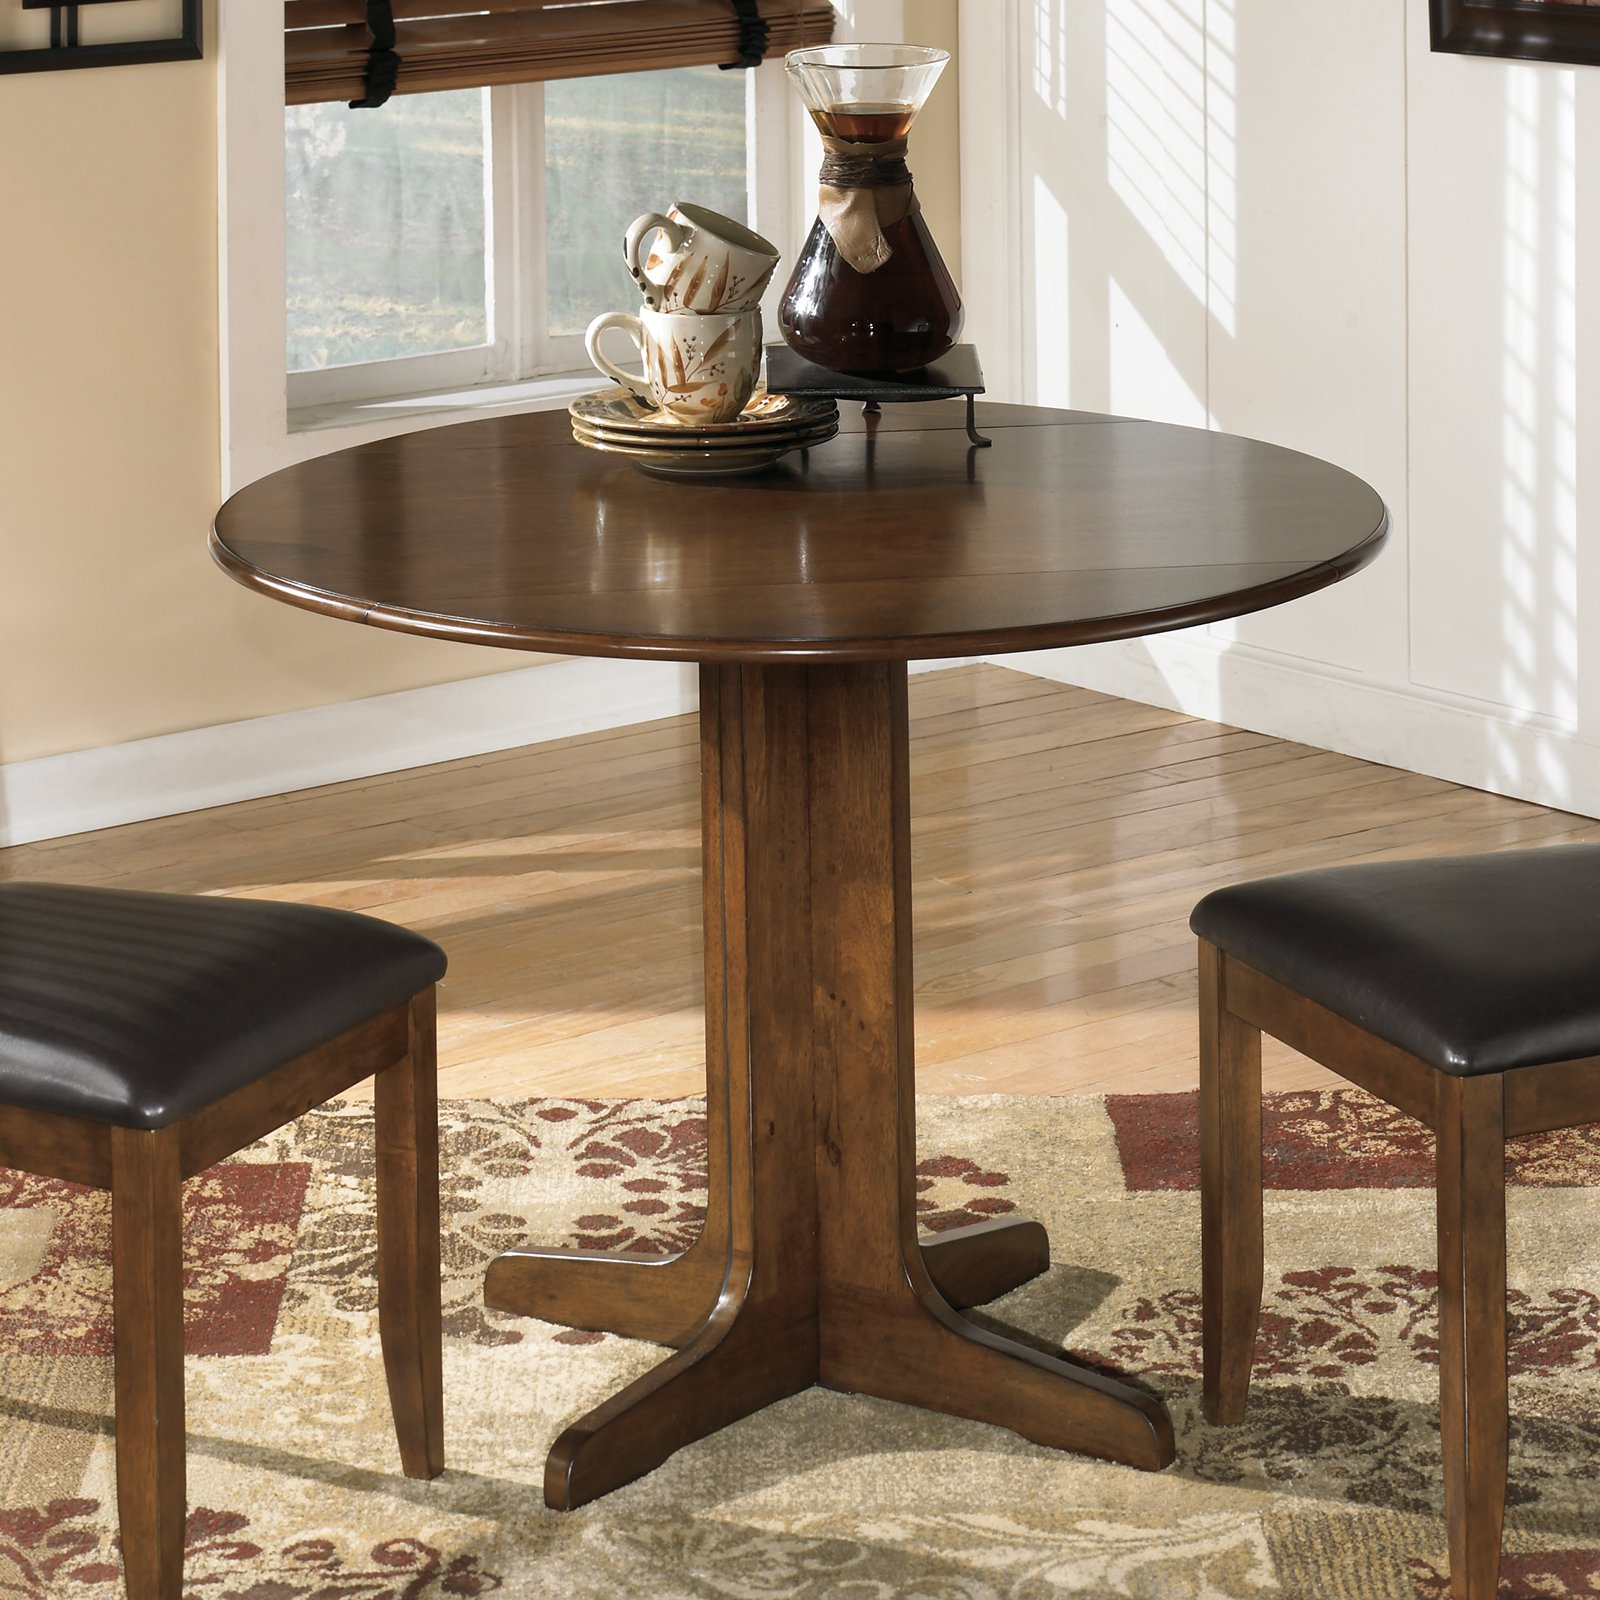 Signature Design by Ashley Stuman Round Dining Table